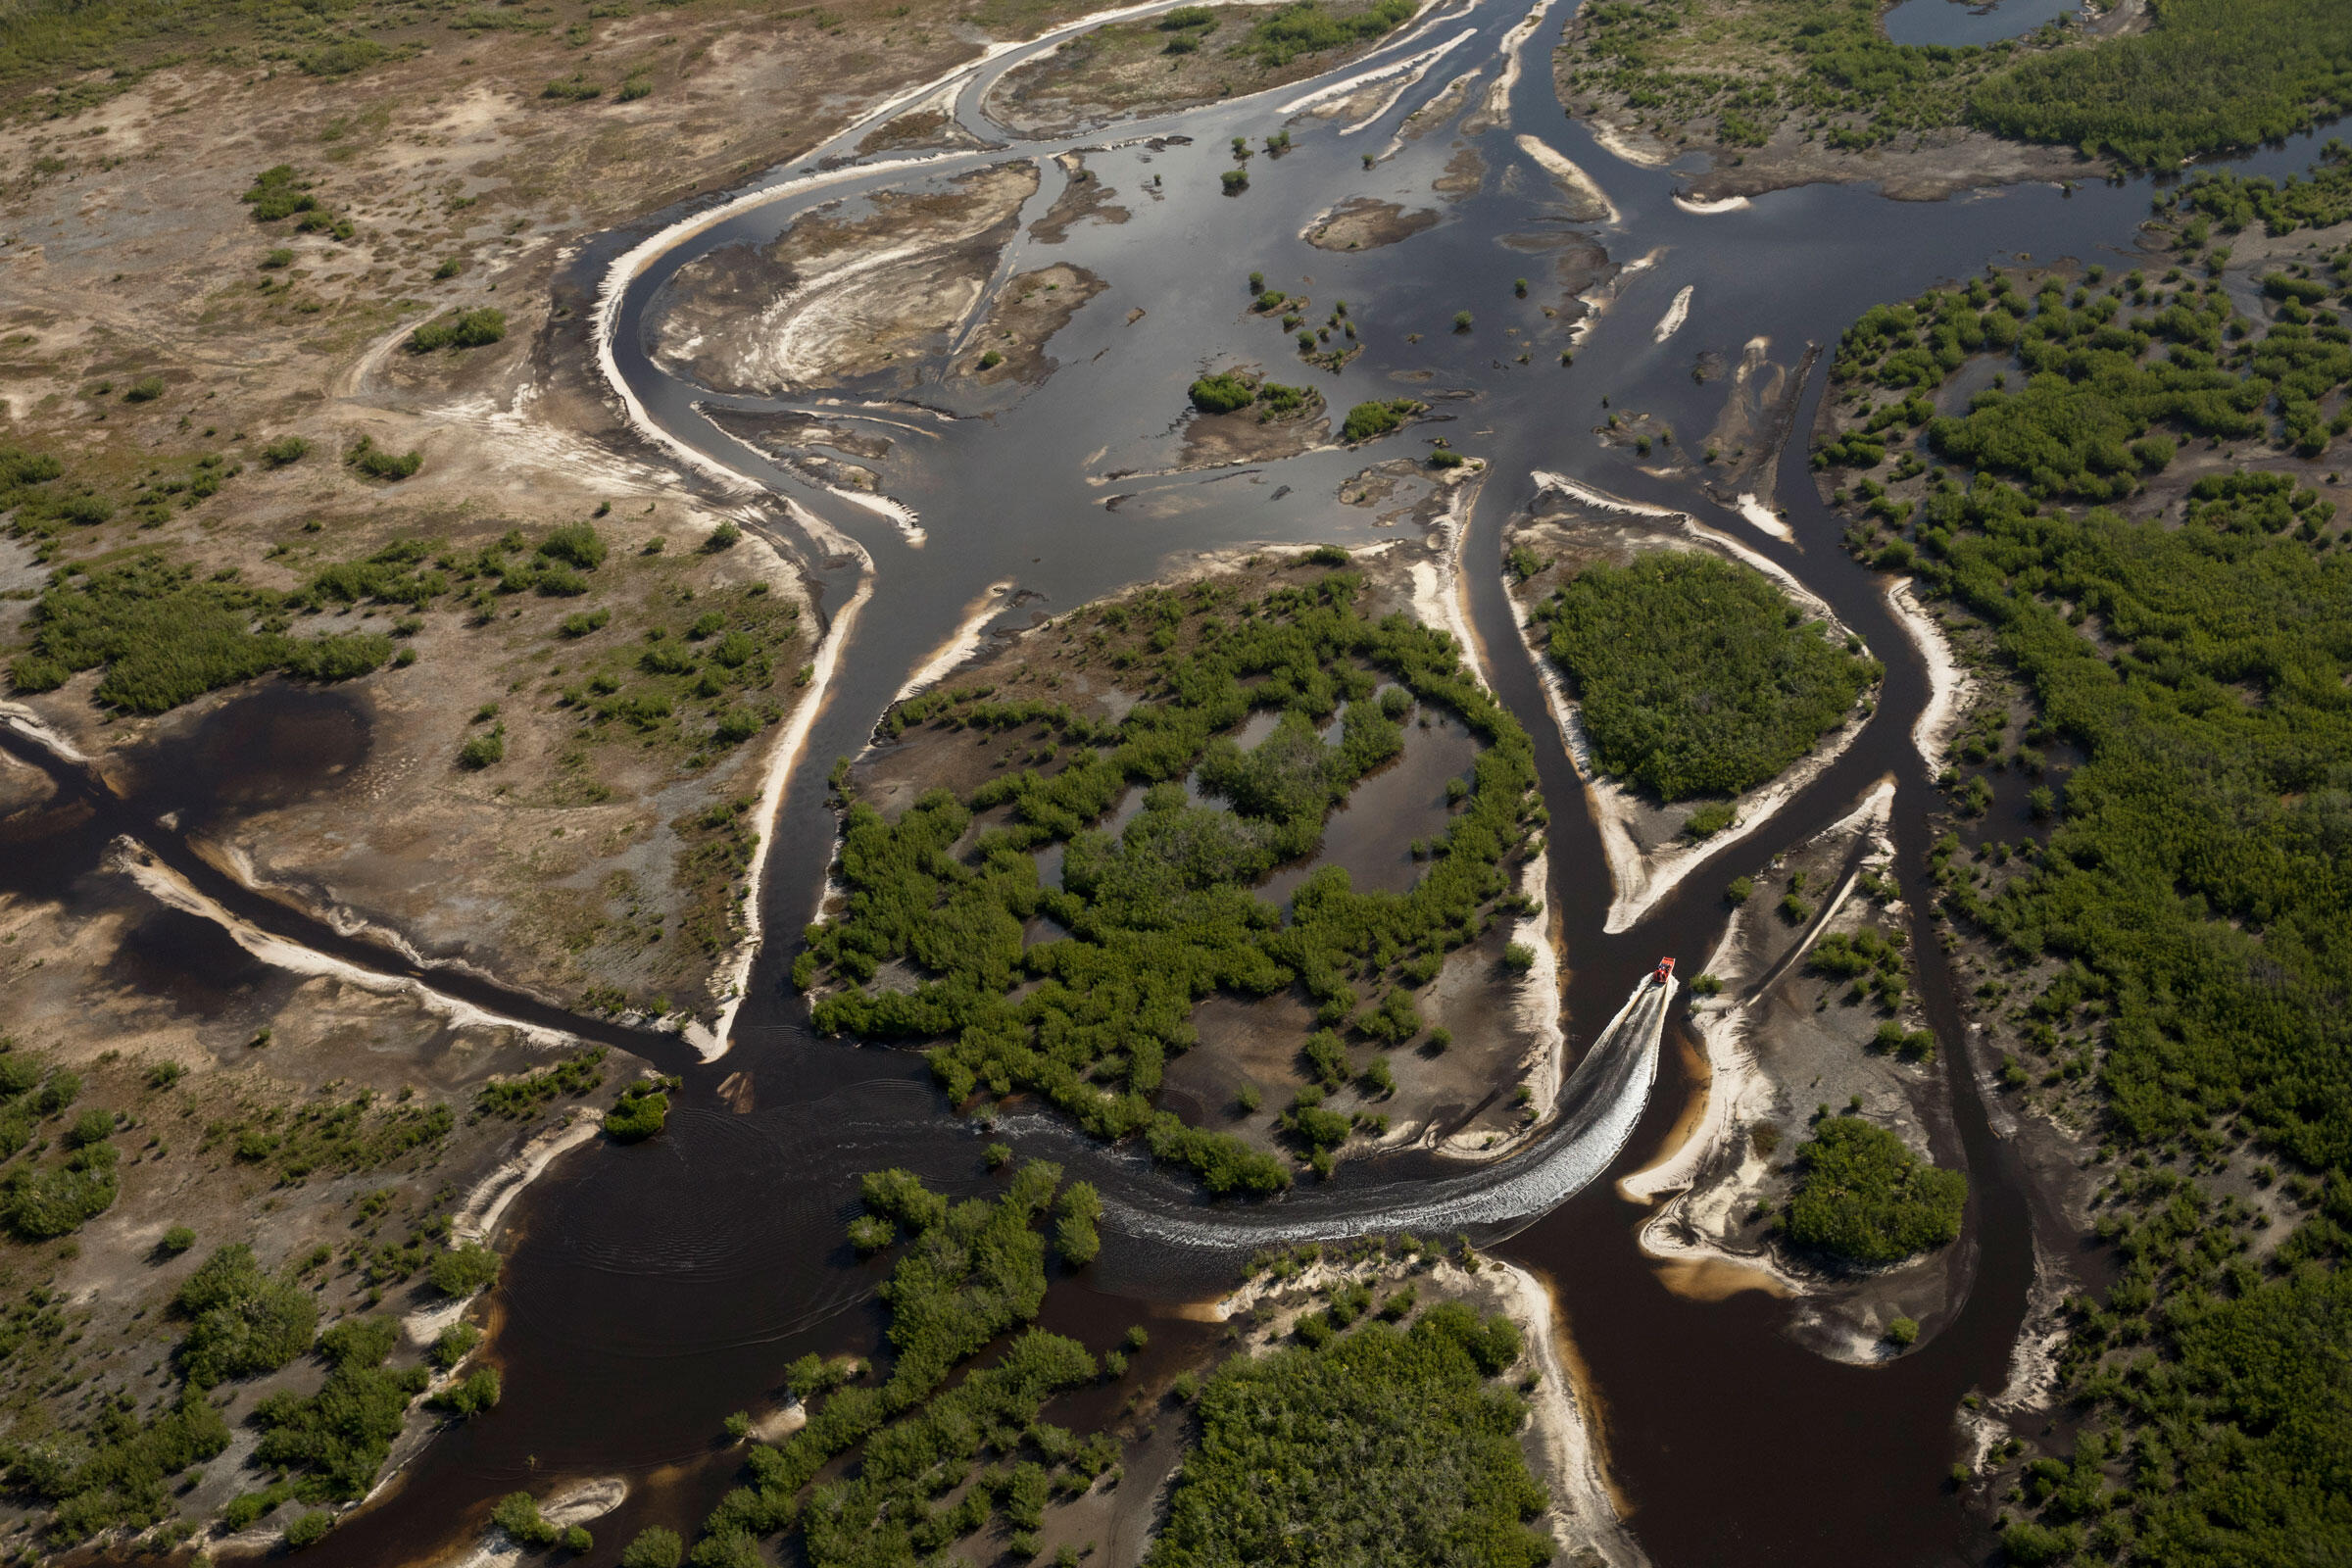 The most effective way to travel through the wetlands, an airboat navigates the sinuous waterways of the Everglades. Mac Stone